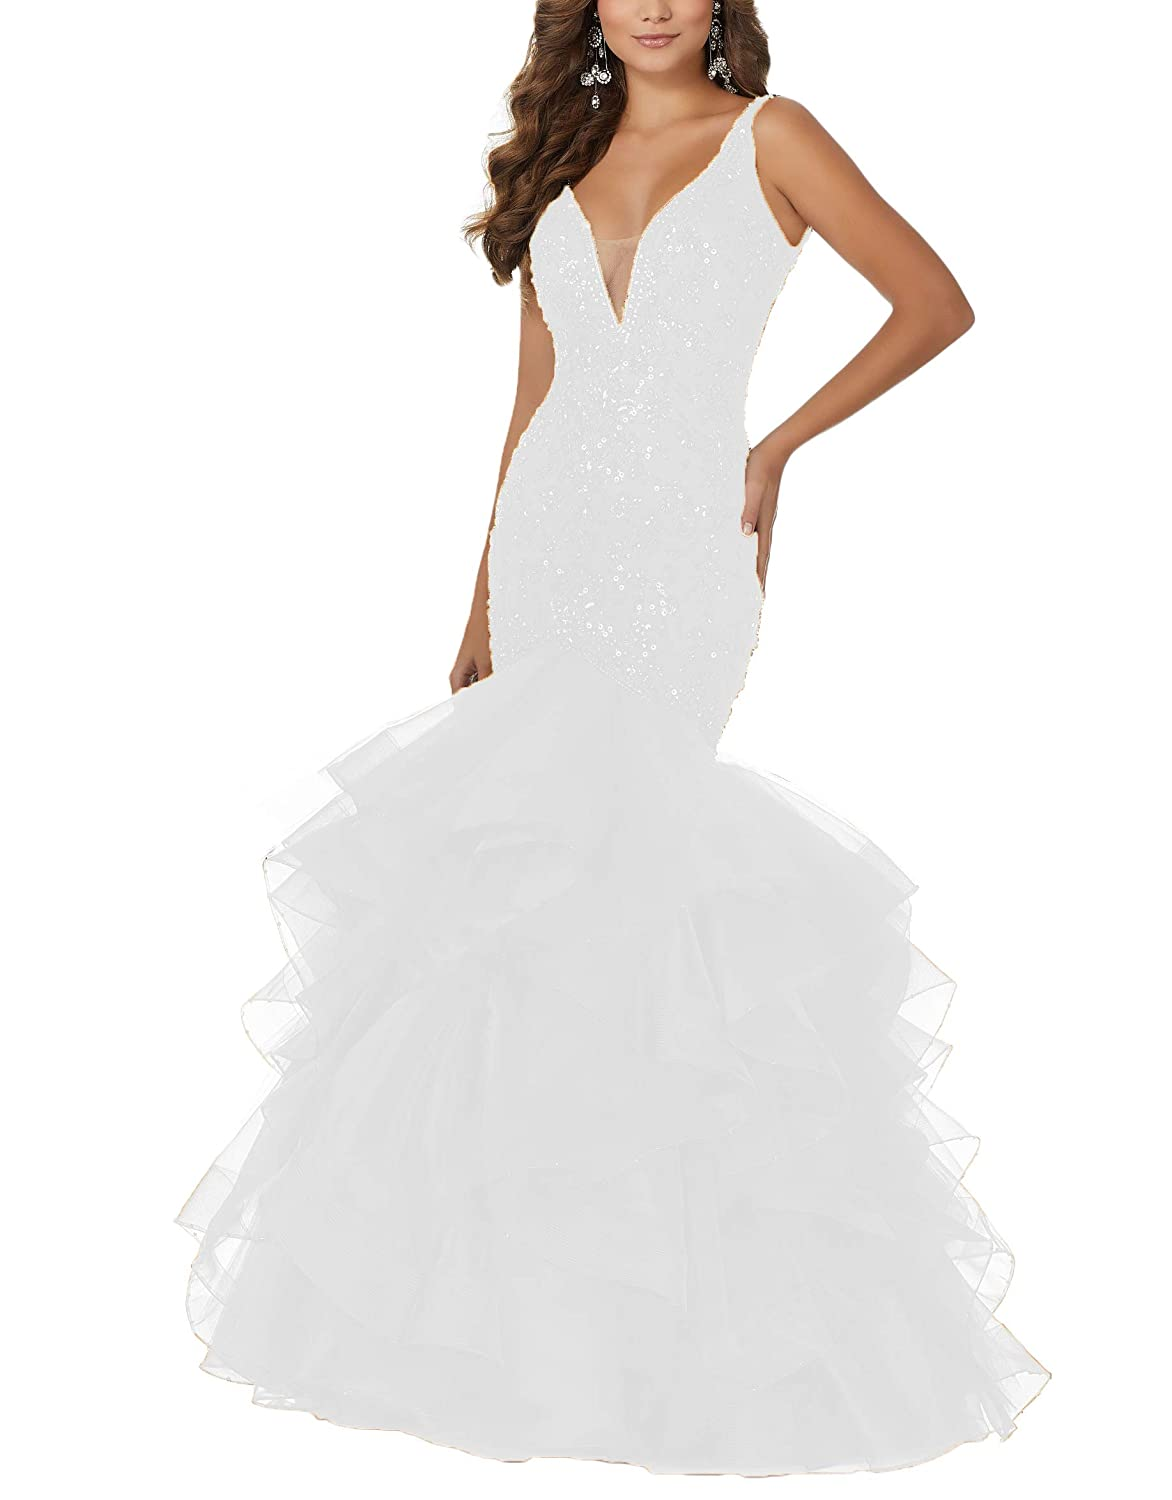 White Yisha Bello Womens Sequins VNeck Mermaid Prom Gowns Long Tulle Beaded Evening Formal Party Dress